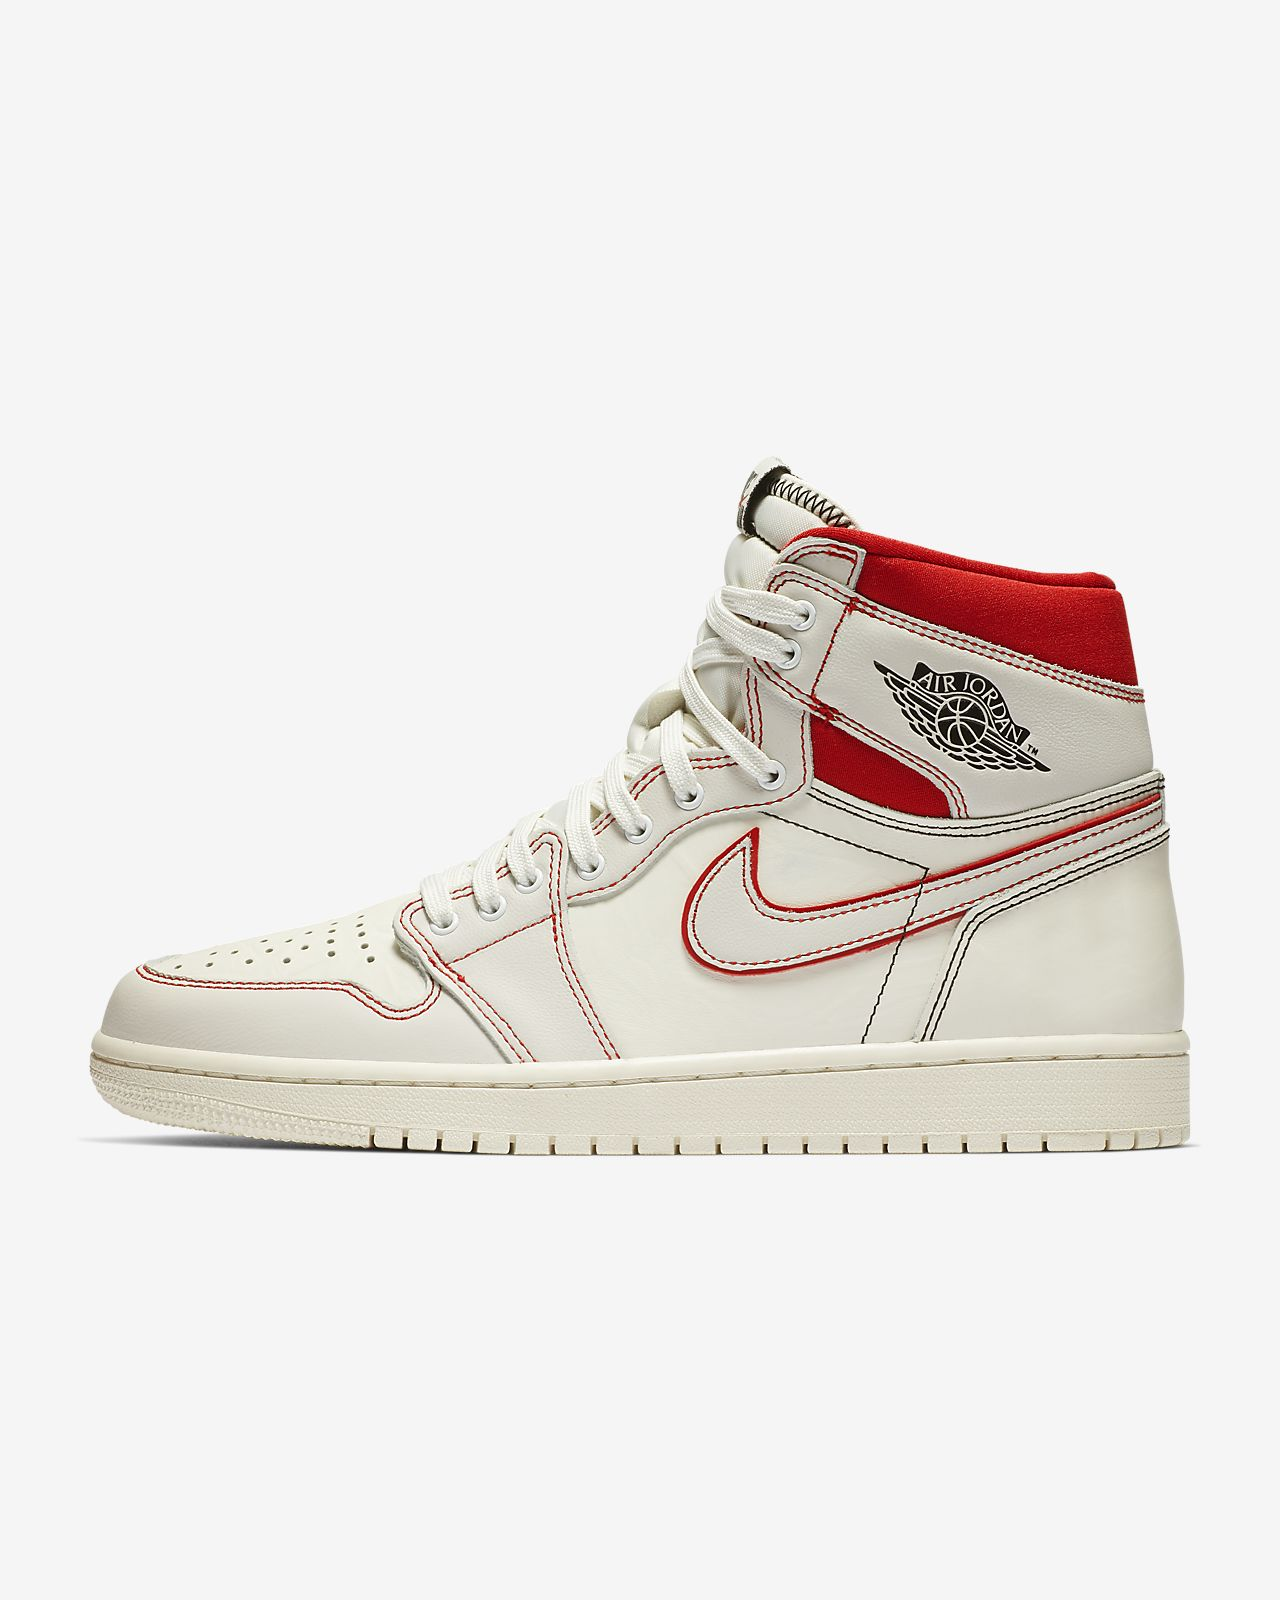 Air Jordan 1 Retro High OG Shoe